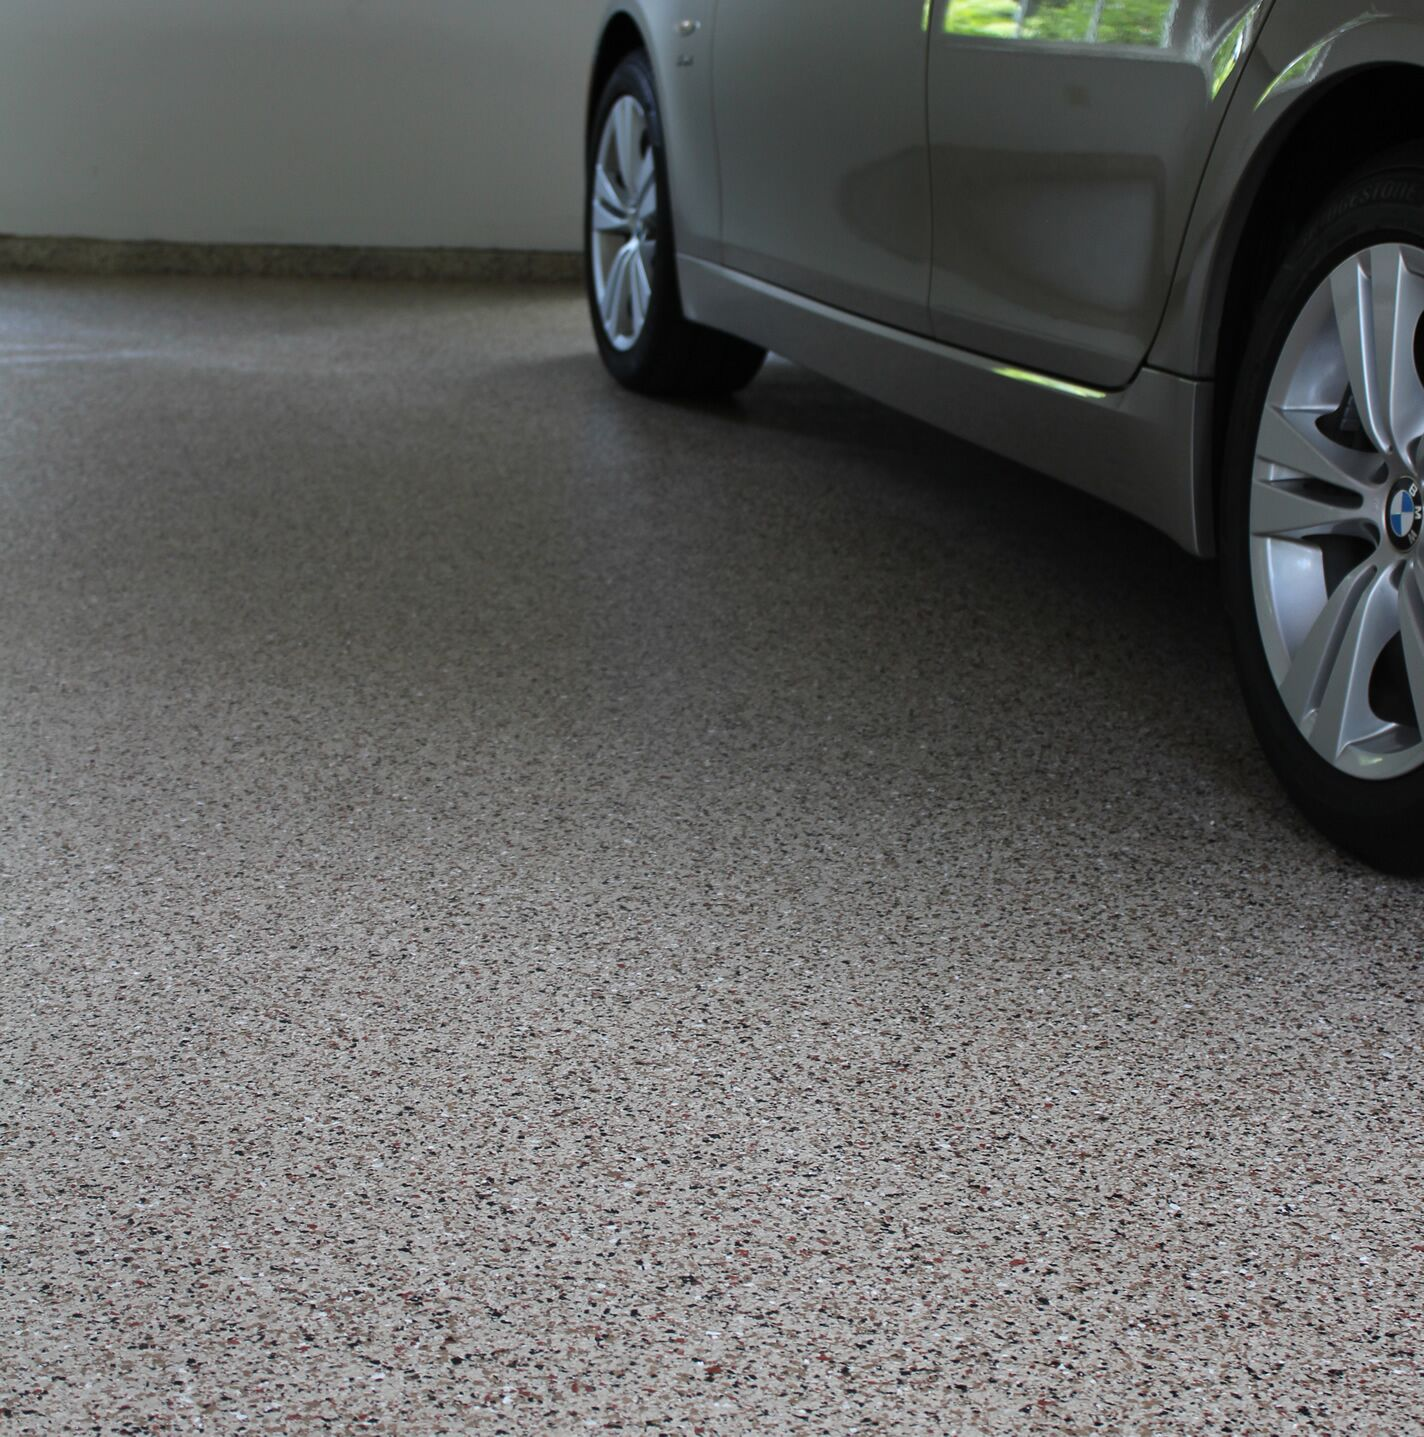 to designs cost images furniture garage l floor epoxy on home coating resin seal paint